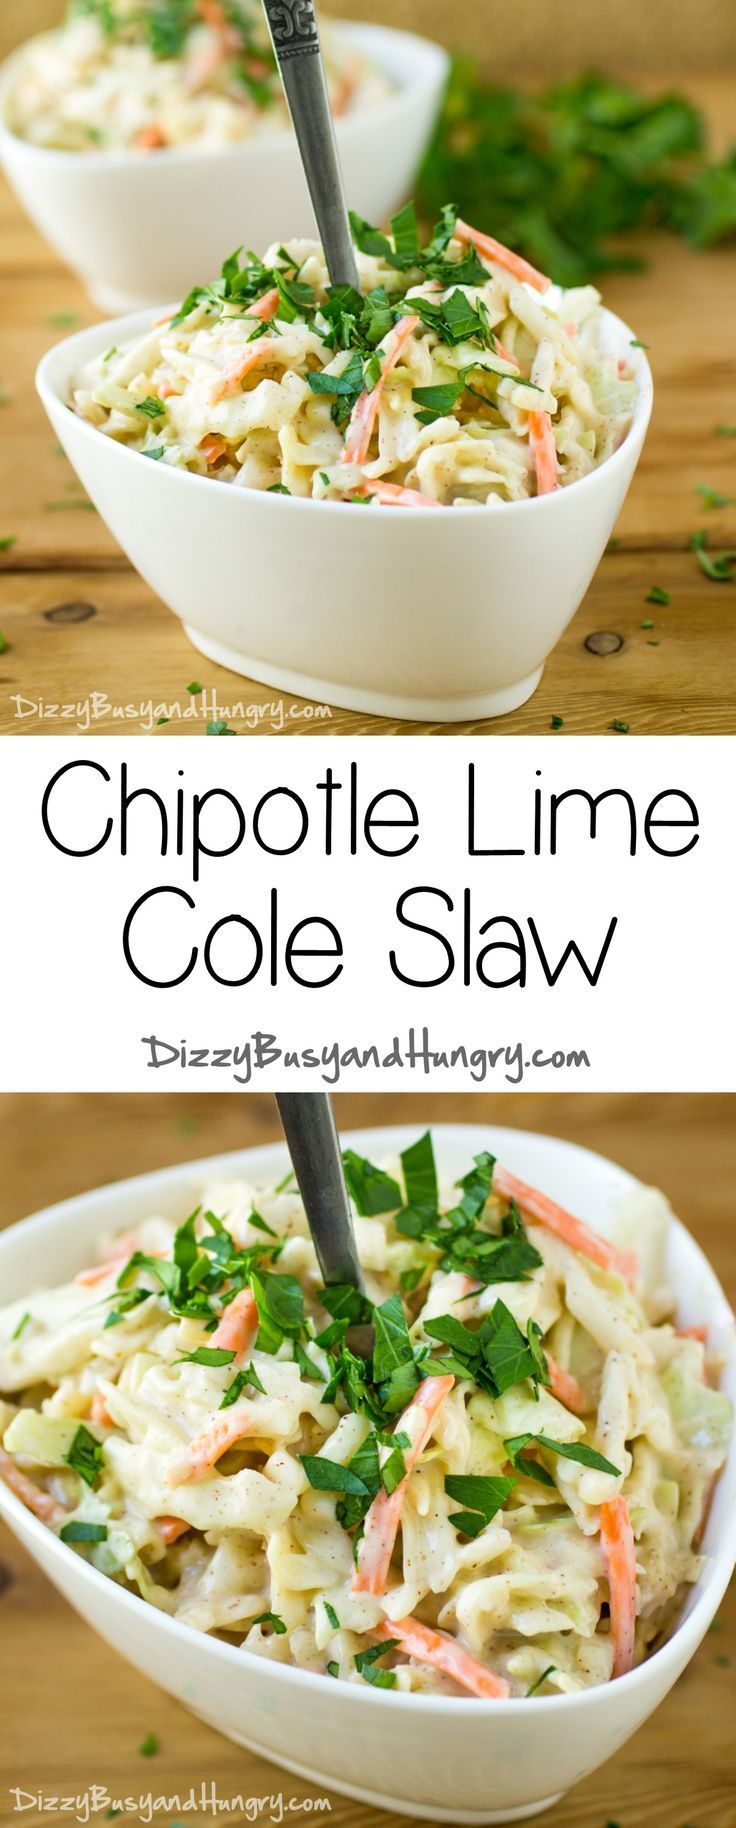 Chipotle Lime Cole Slaw #SundaySupper   DizzyBusyandHungry.com - Wowee! This easy cole slaw has SO much flavor, you won't believe your taste buds!